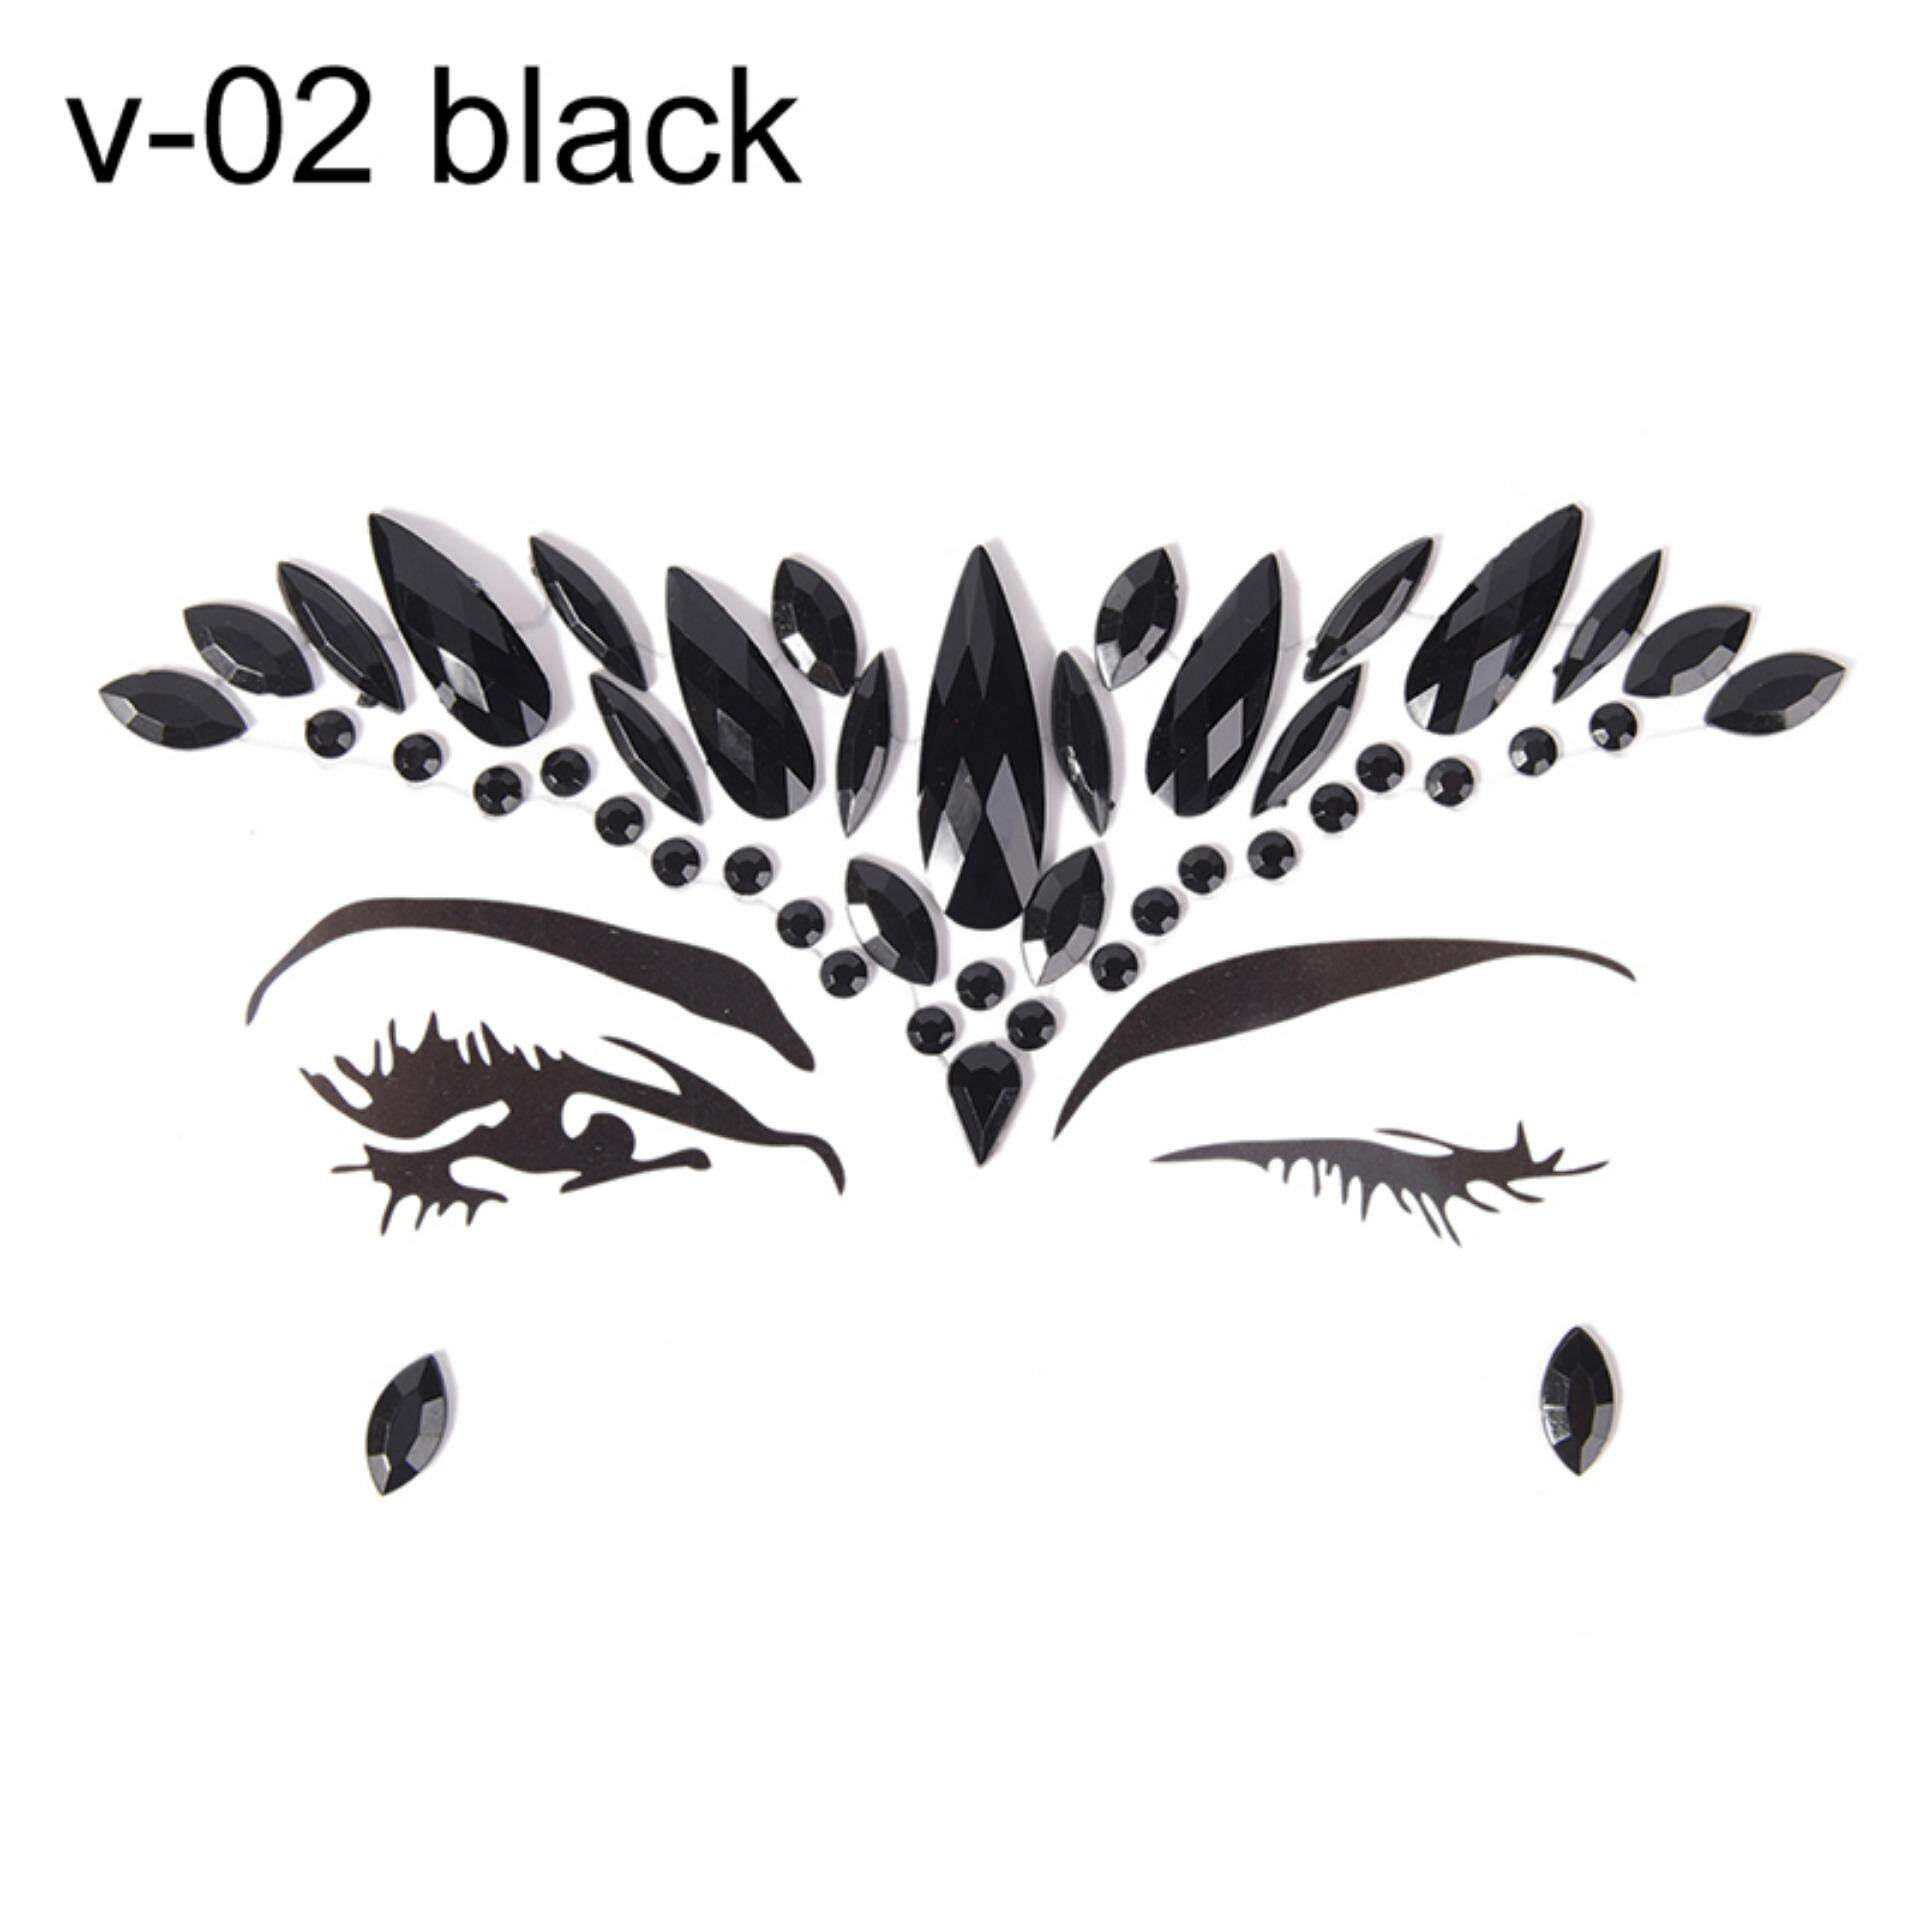 Makeup Fancy Crystal Face Body Jewels Festival Party Glitter Eye Stickers Tattoo Color: v-02 Black - intl tốt nhất